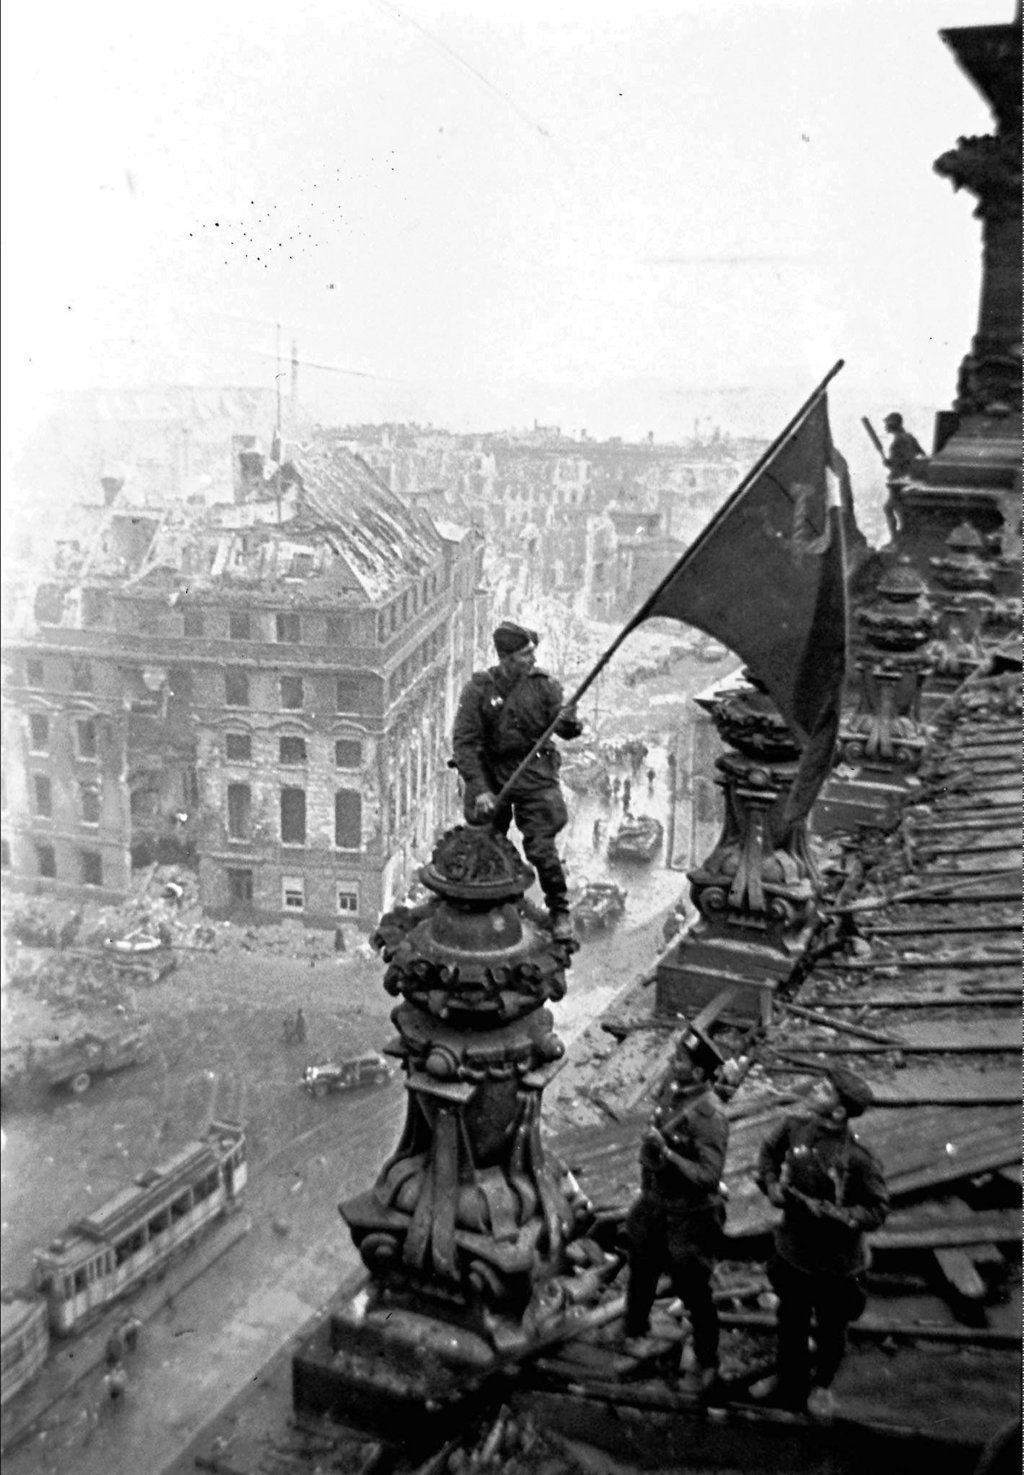 FILE- In this May 2, 1945 file photo, Soviet soldiers hoist the red flag over the Reichstag after the fall of Berlin, which is one of t...